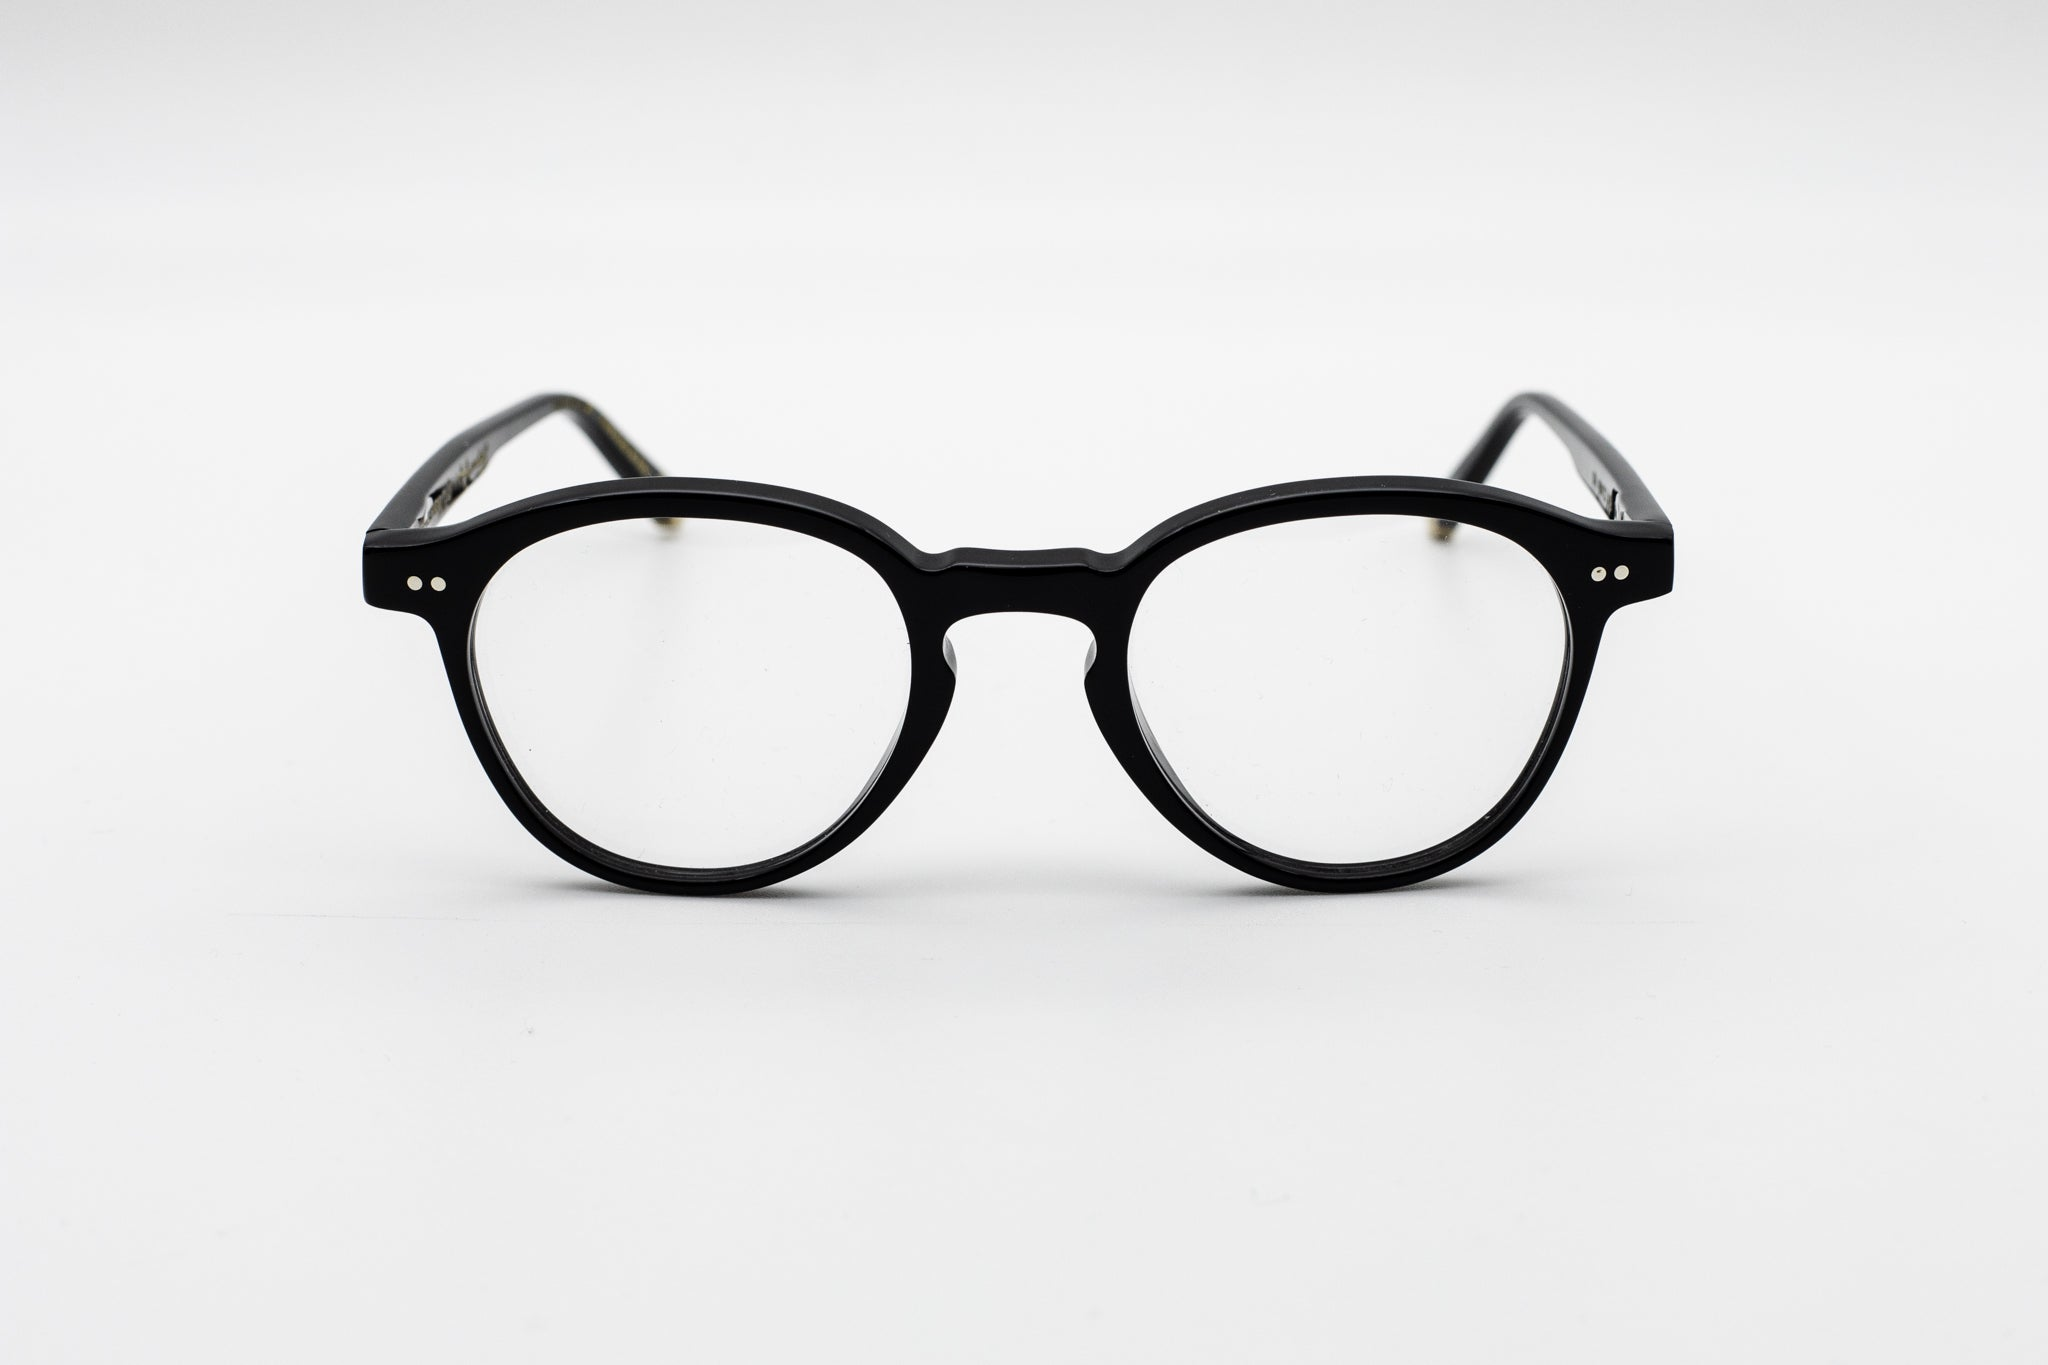 RSF by RETROSUPERFUTURE THE WARHOL OPTICAL - COSG